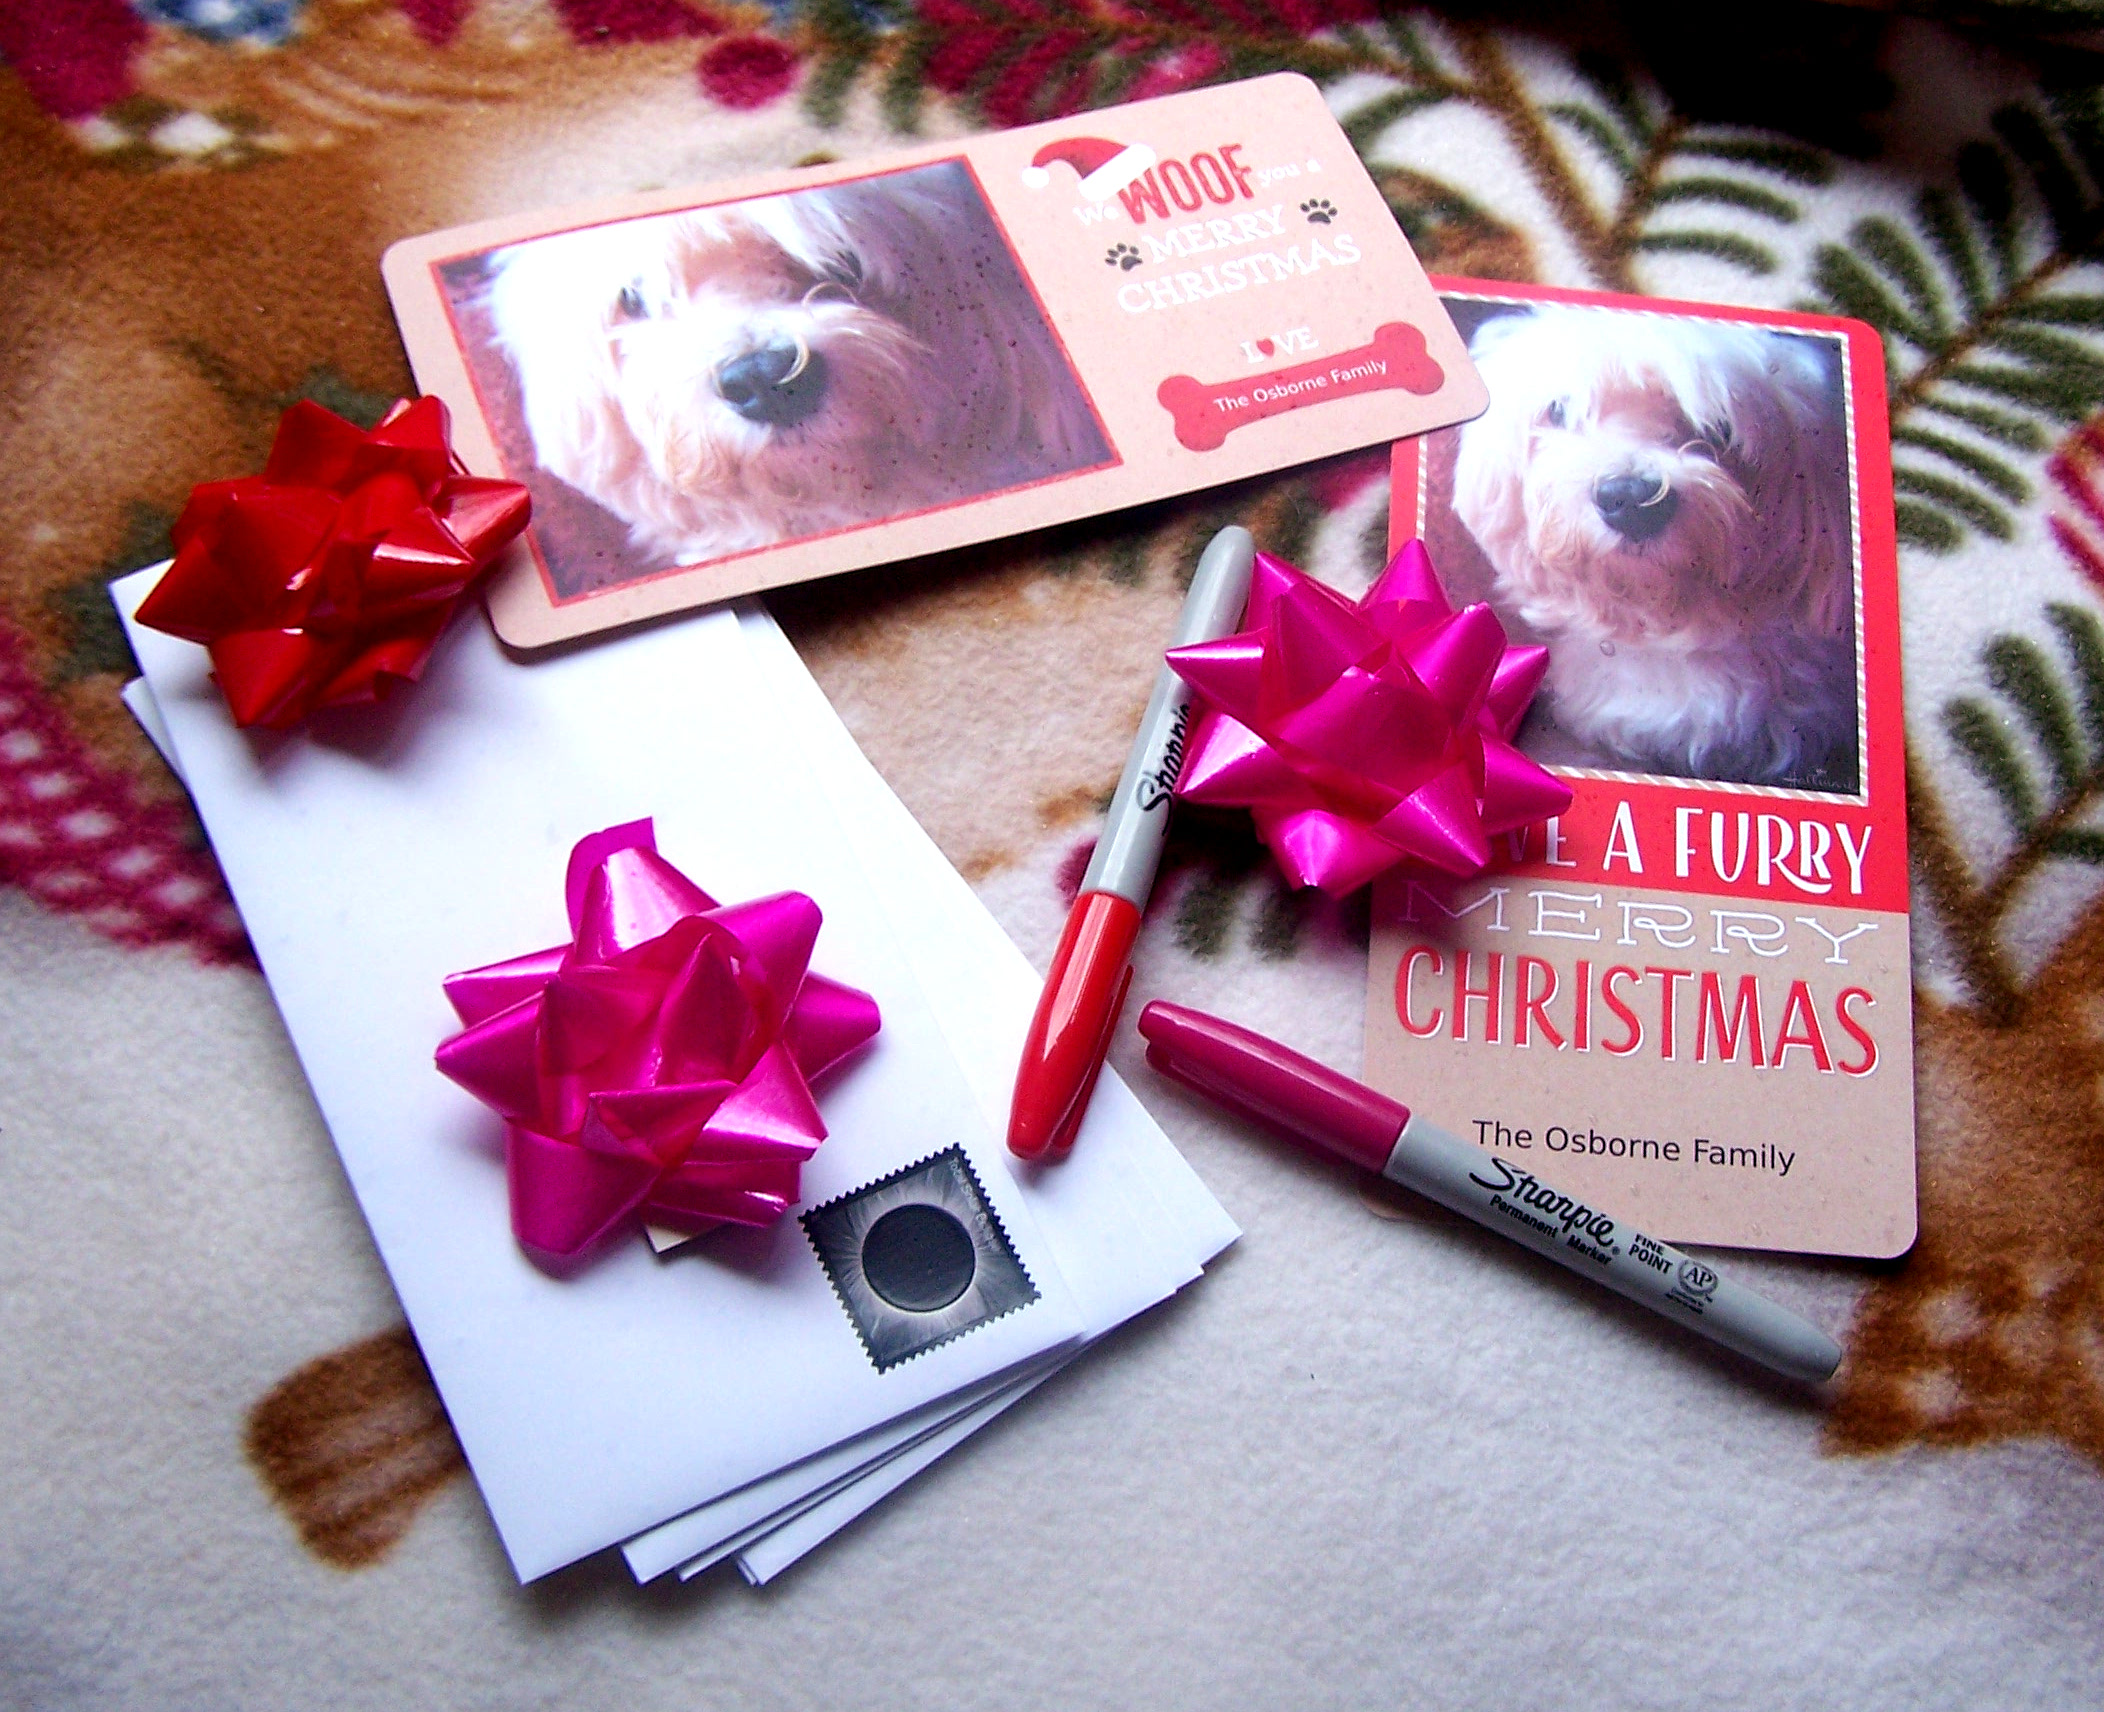 hallmark walmart photos photo cards holiday christmas pet dog diy one hour delivery pick up in store ;oehllmark pr brand ambassador cards paper greetins